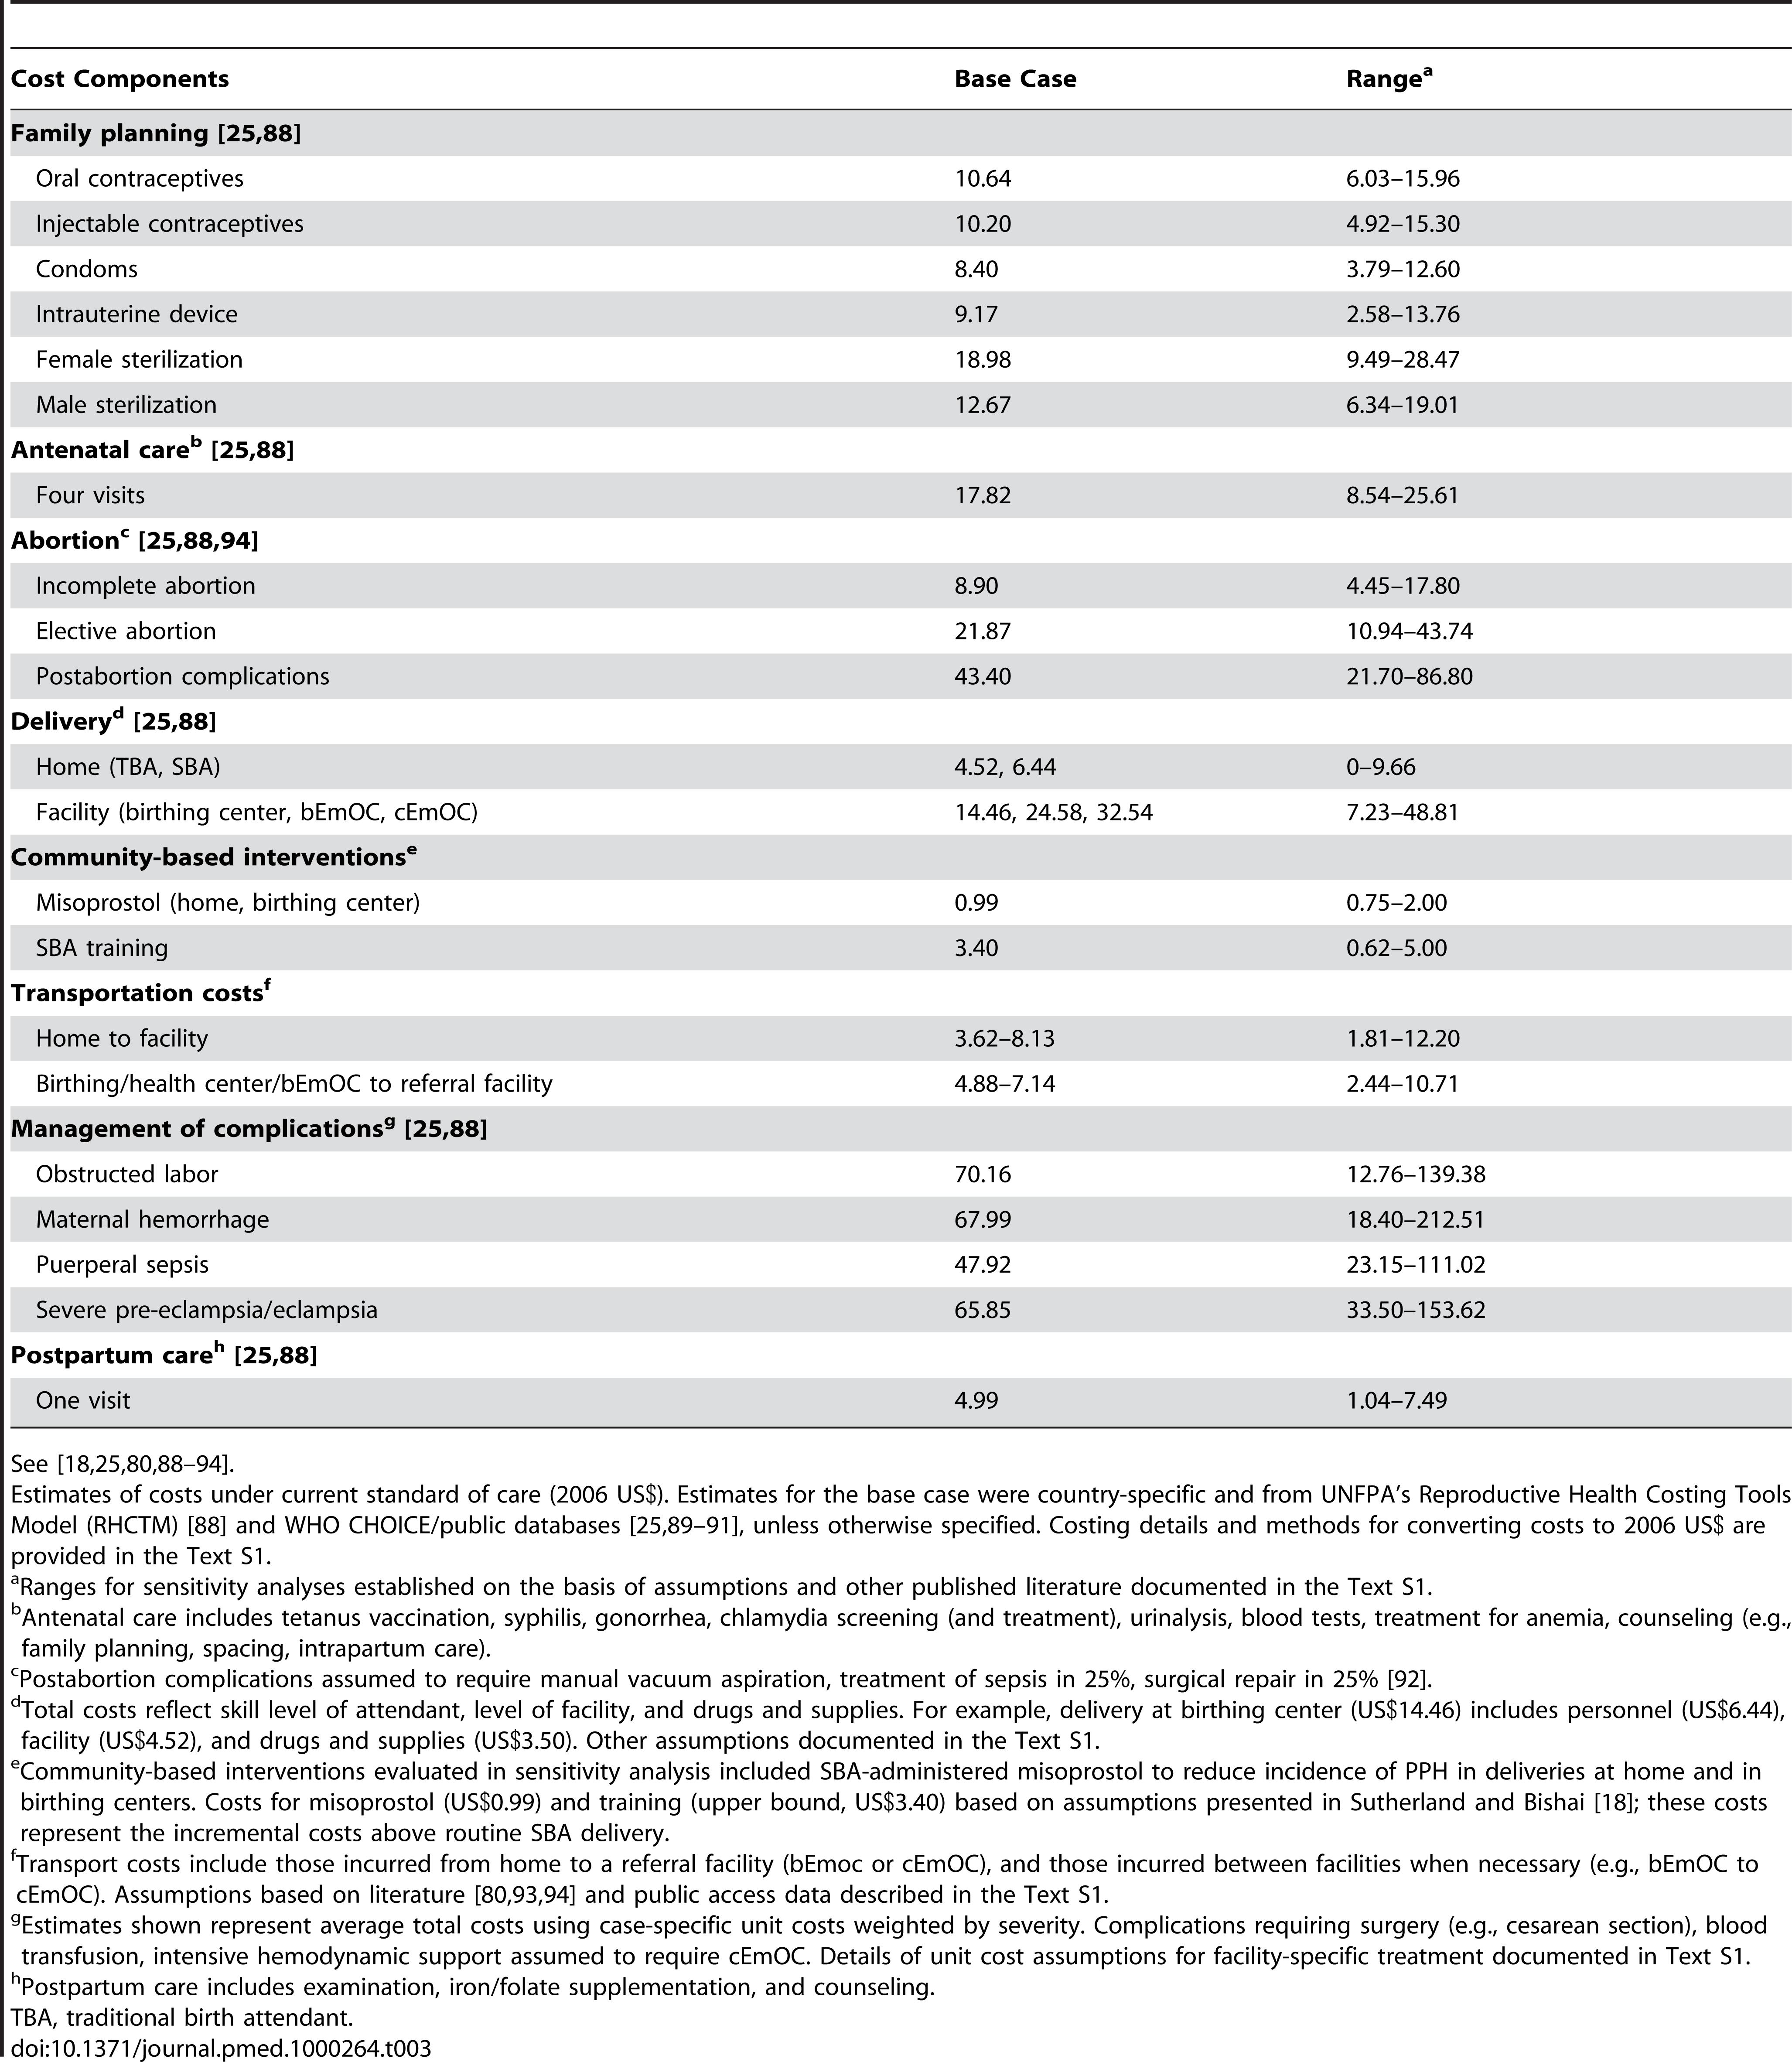 Selected model input costs.